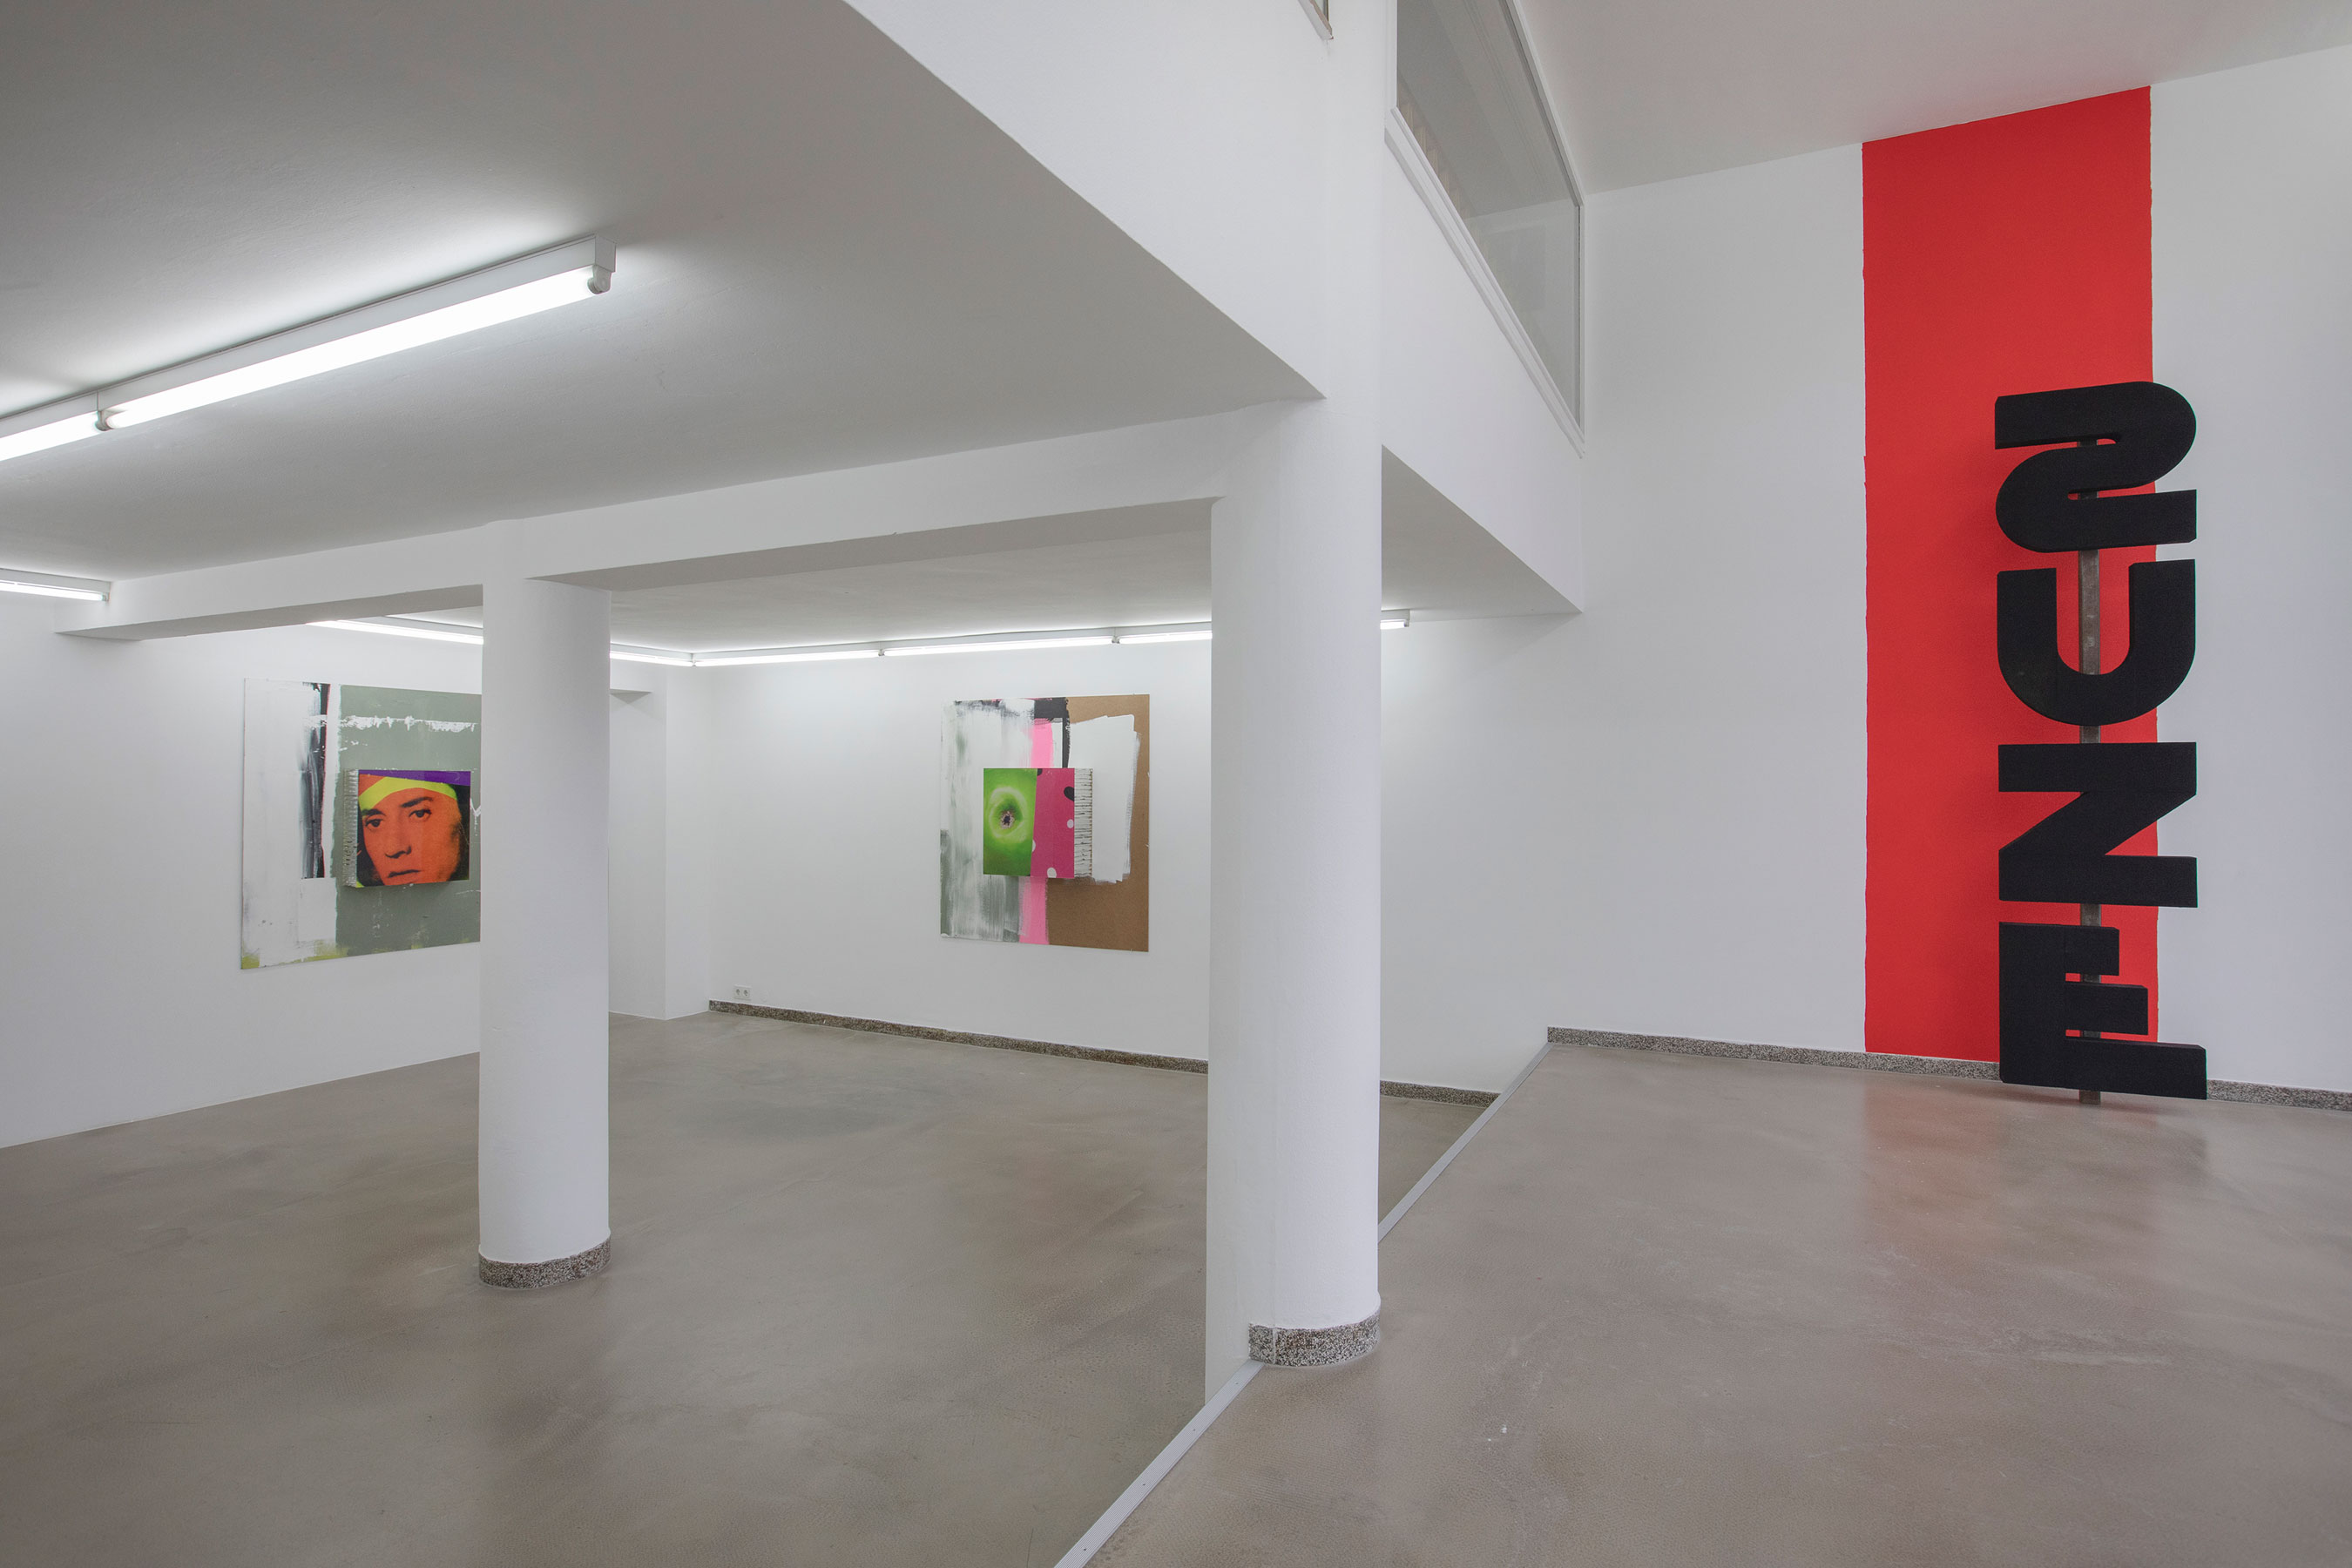 Back-to-back_mueller_harald_f_installation-view_2019_04